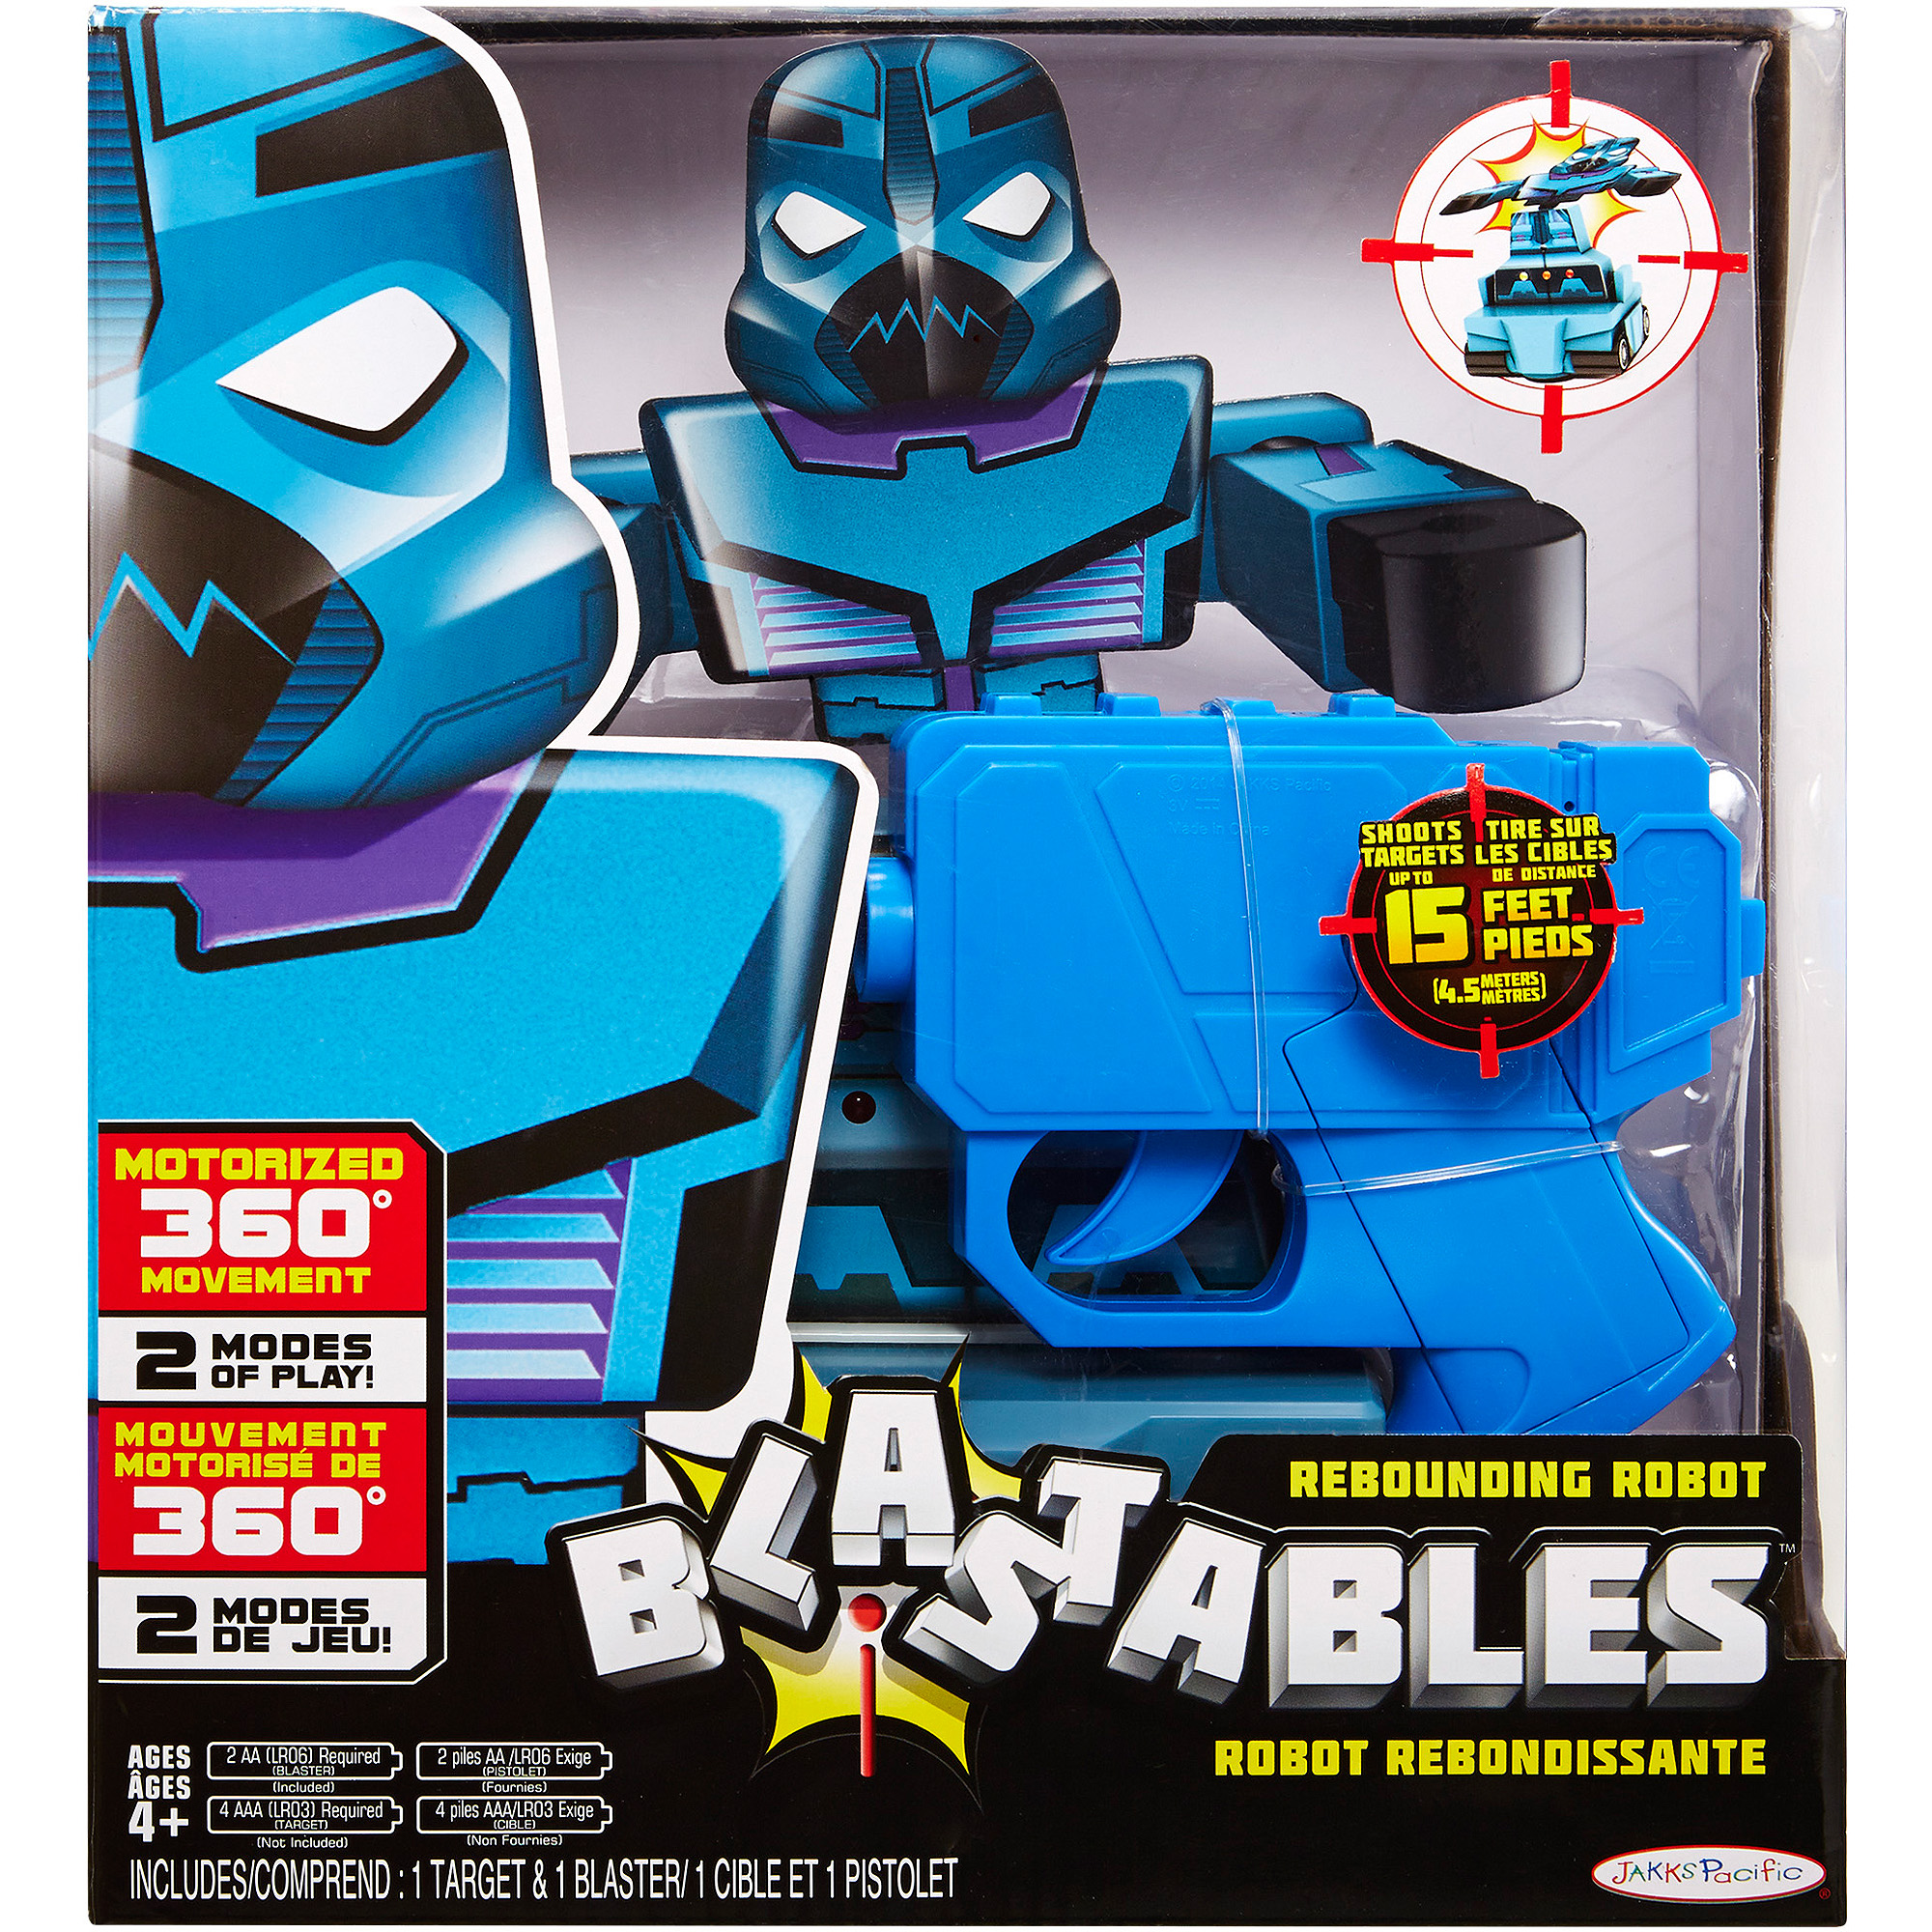 Blastables Bump N Blast Rebounding Target Robot Theme with Blue Blaster by Generic